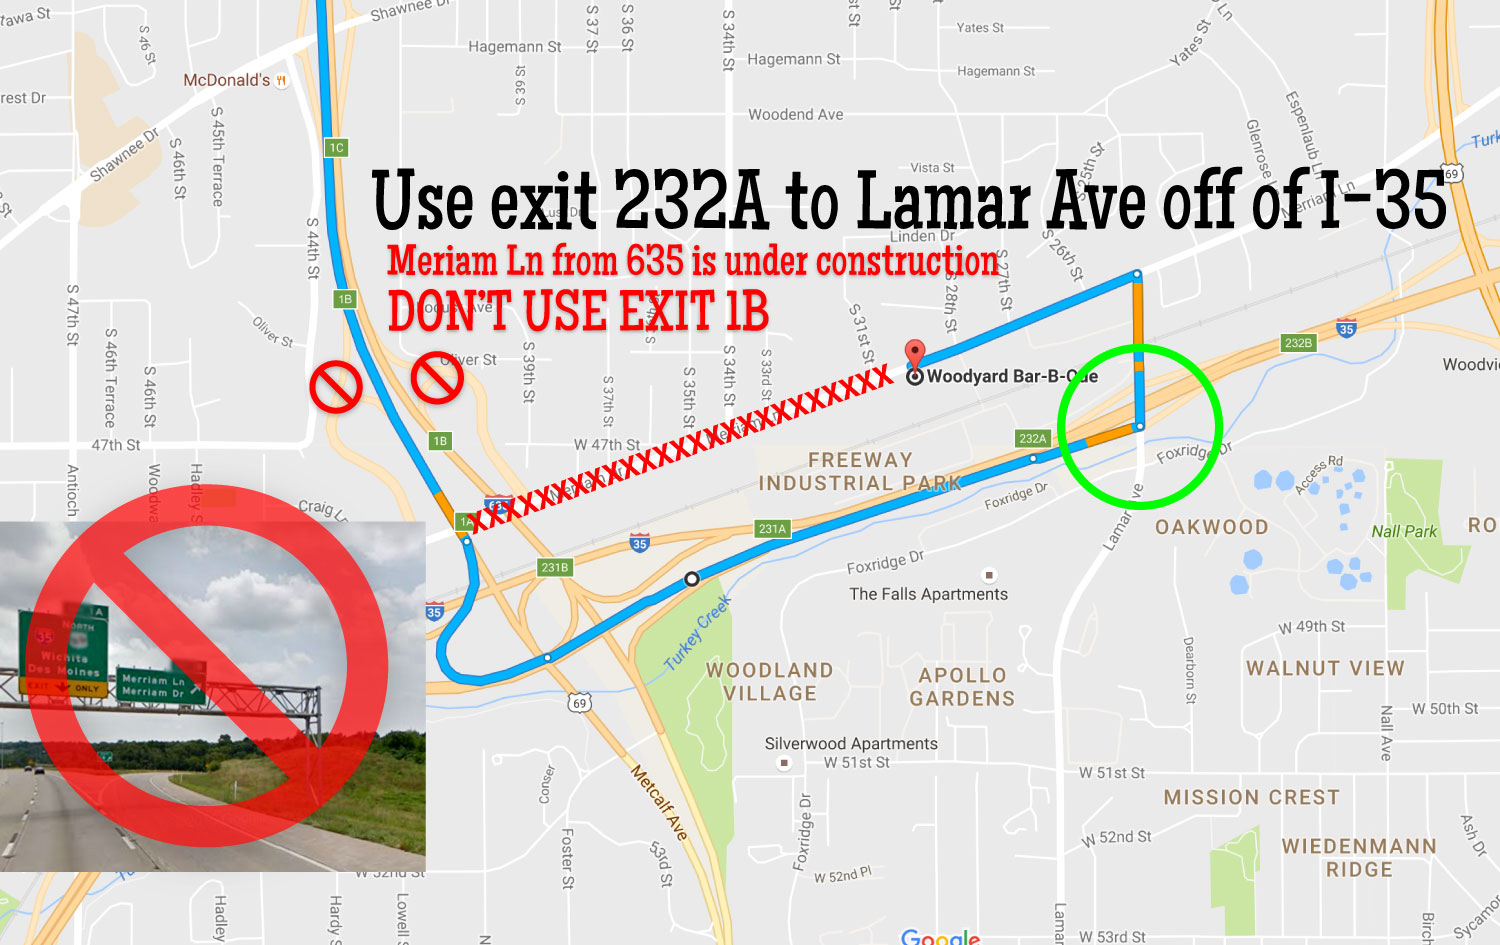 During road construction: please use Lamar/I-35 Exit.